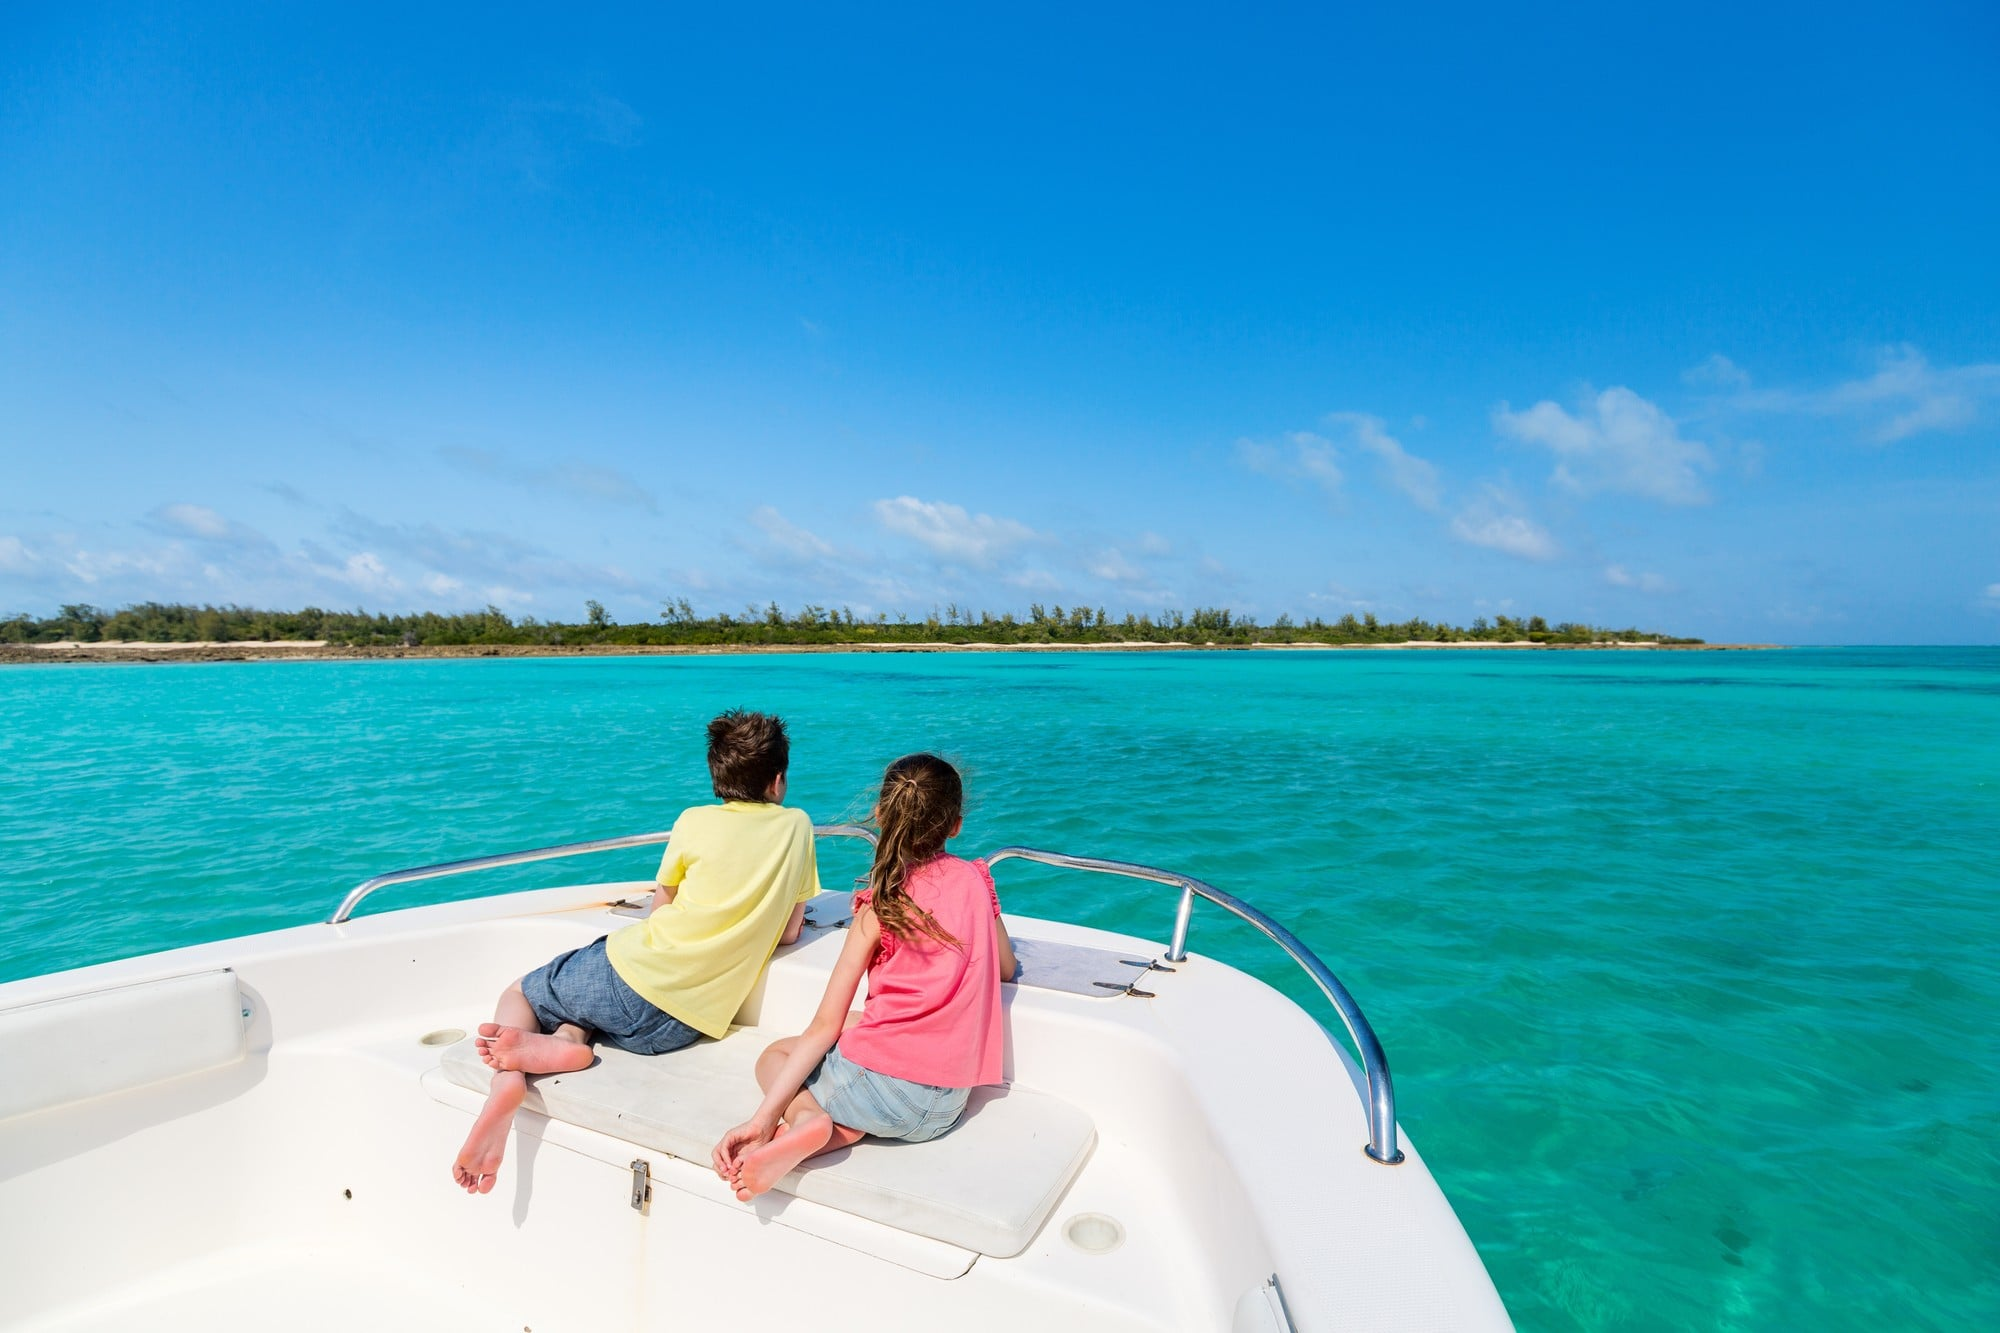 Facing the direction you're headed can help avoid motion sickness on a boat or any mode of transportation